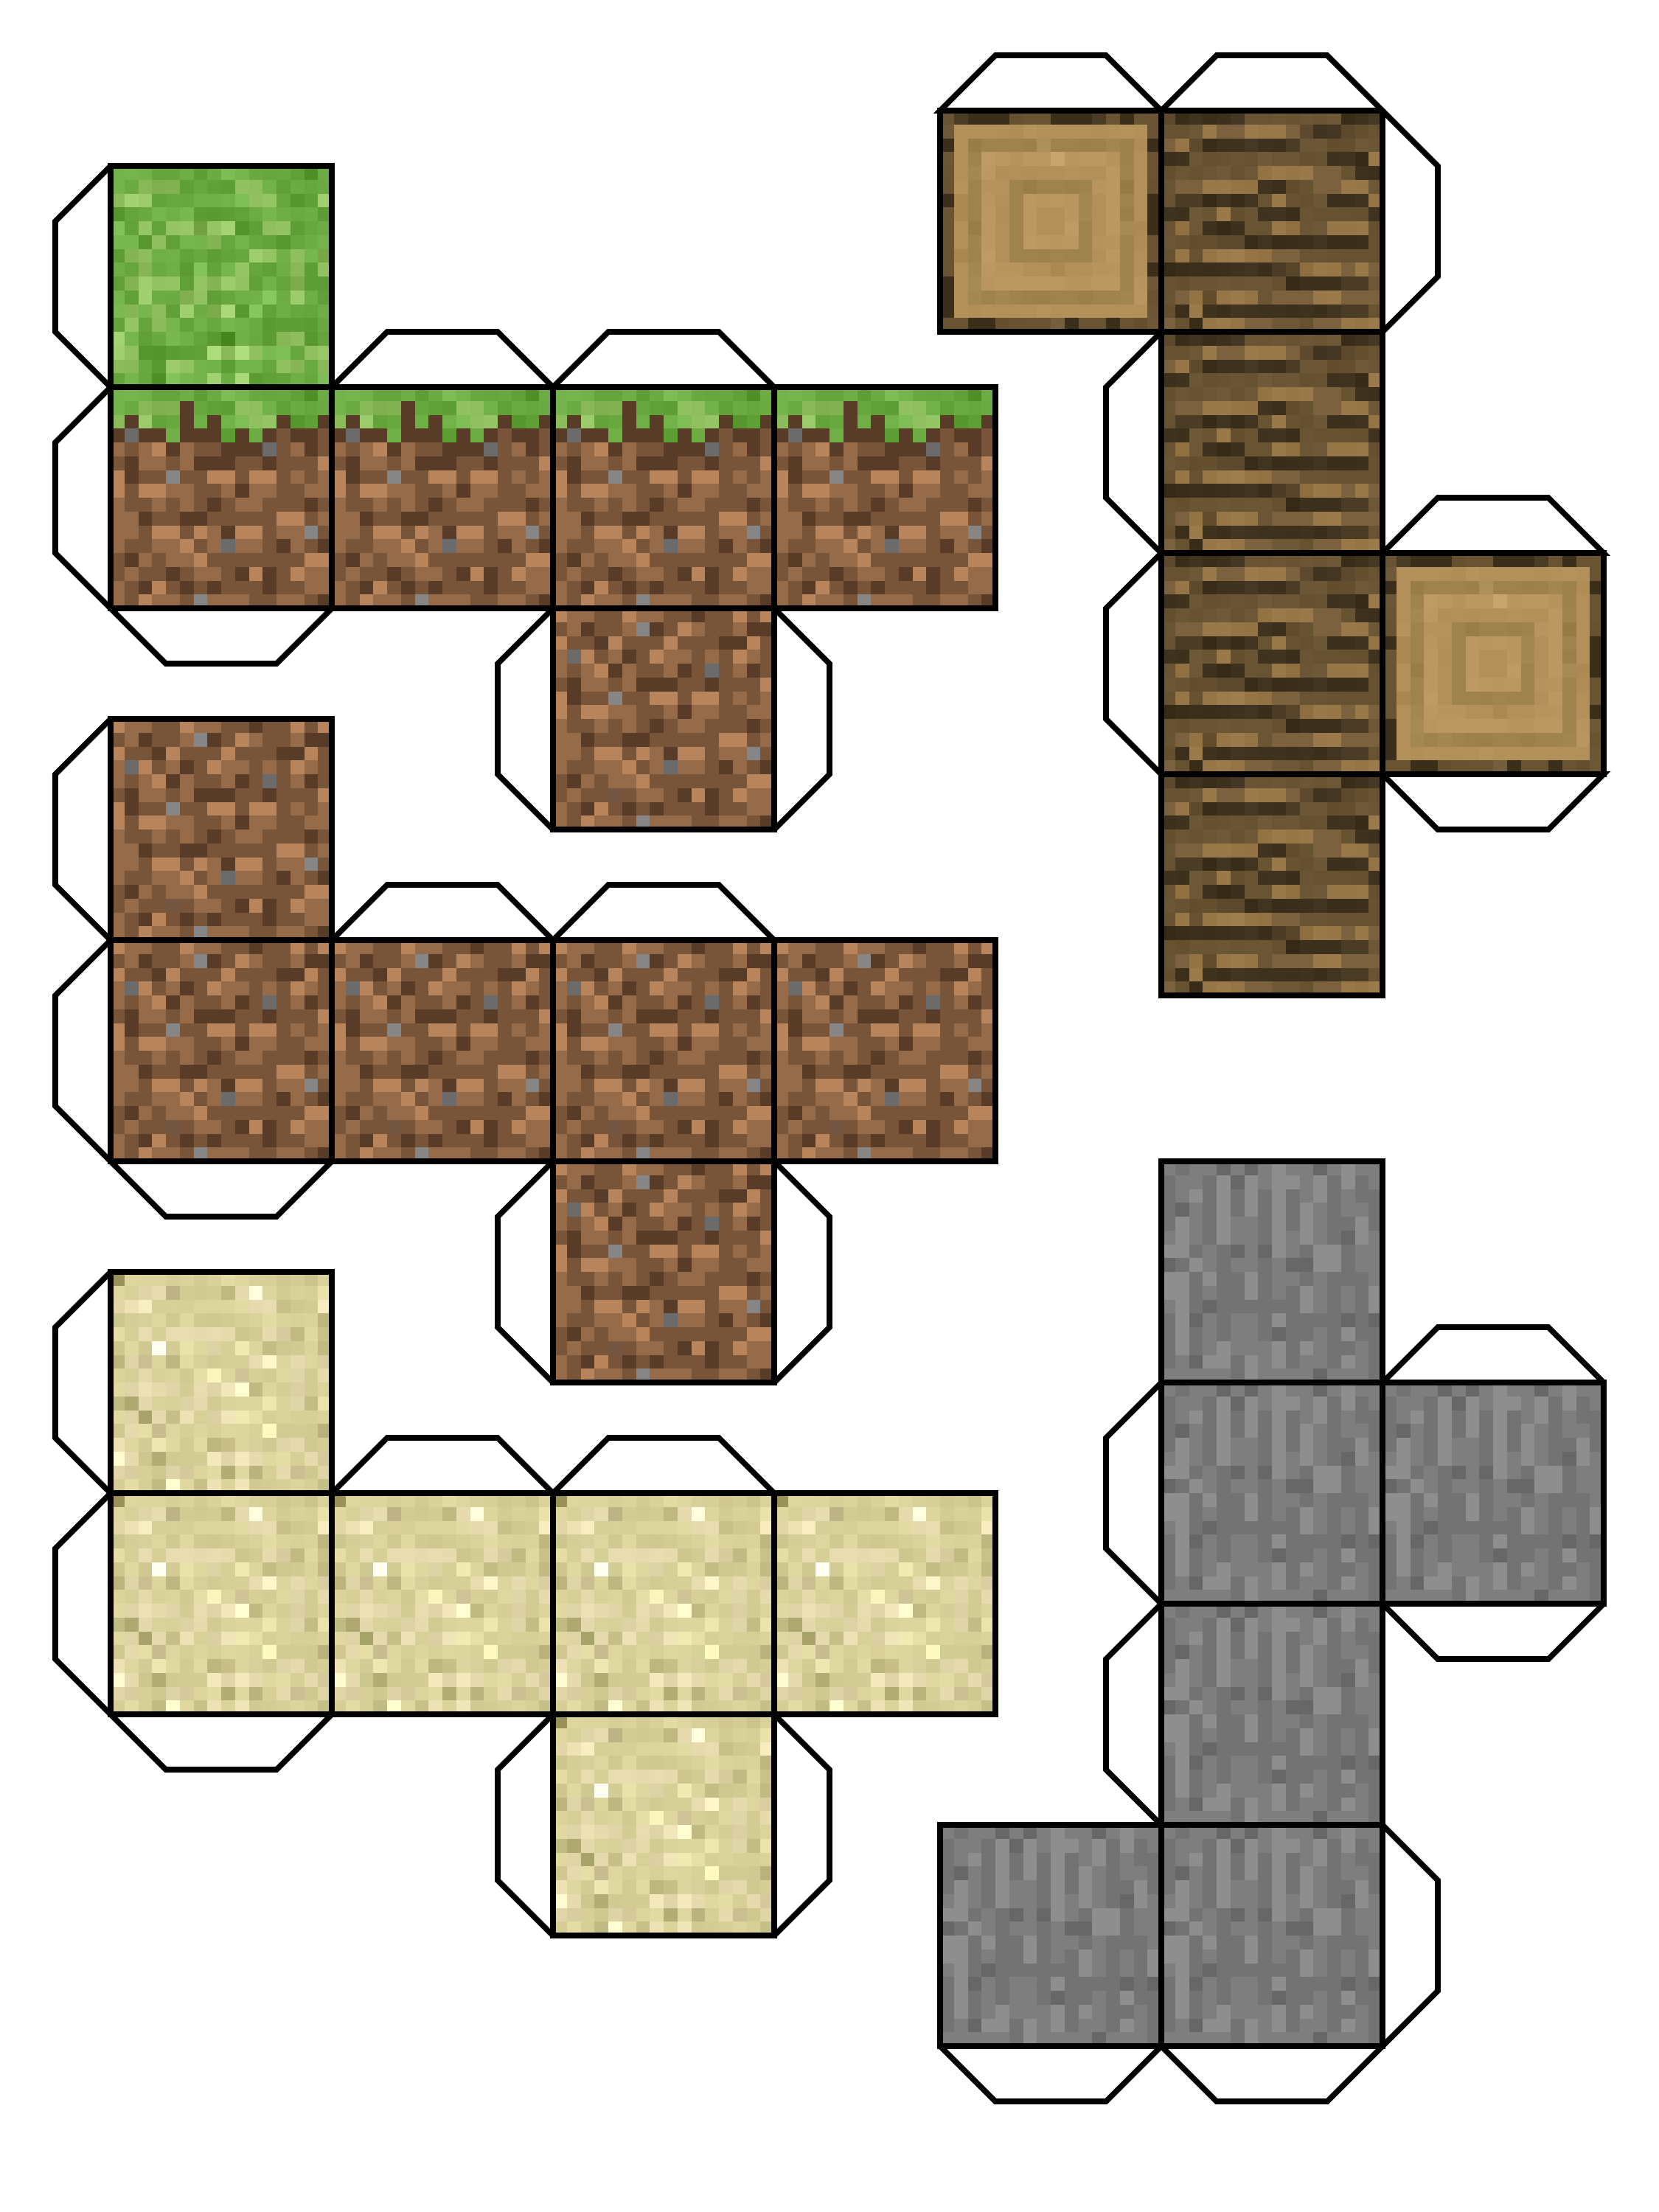 graphic about Minecraft Blocks Printable titled Papercraft 5 Clic Blocks Cakes and Birthday Stufff